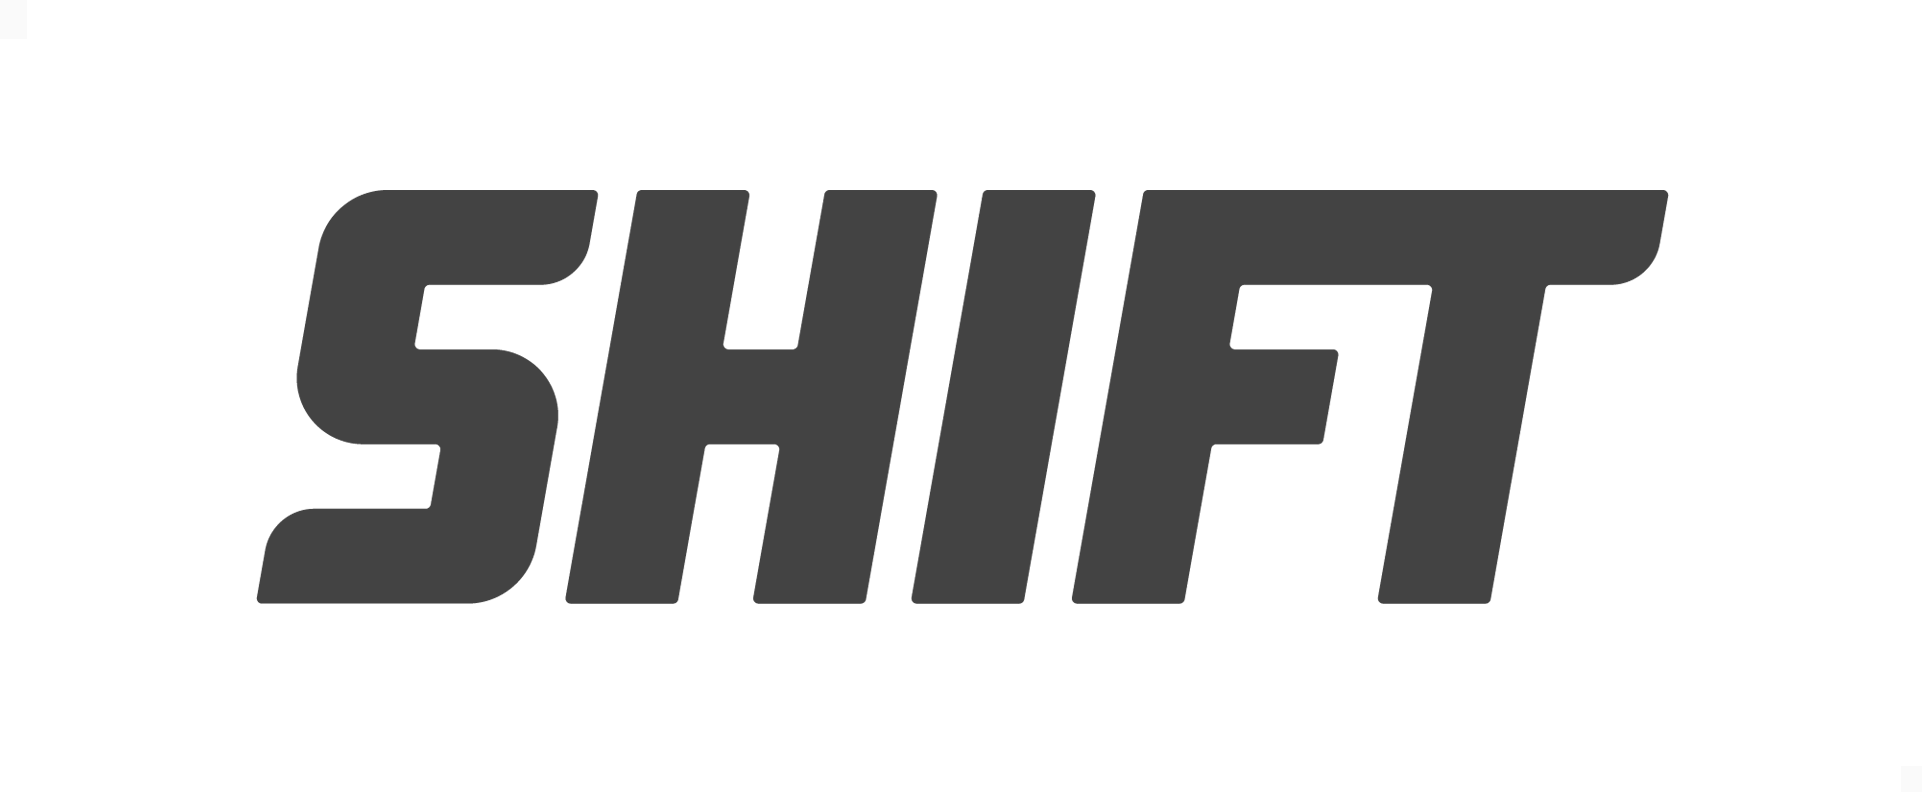 Shift | The completely reimagined way to buy or sell a used car